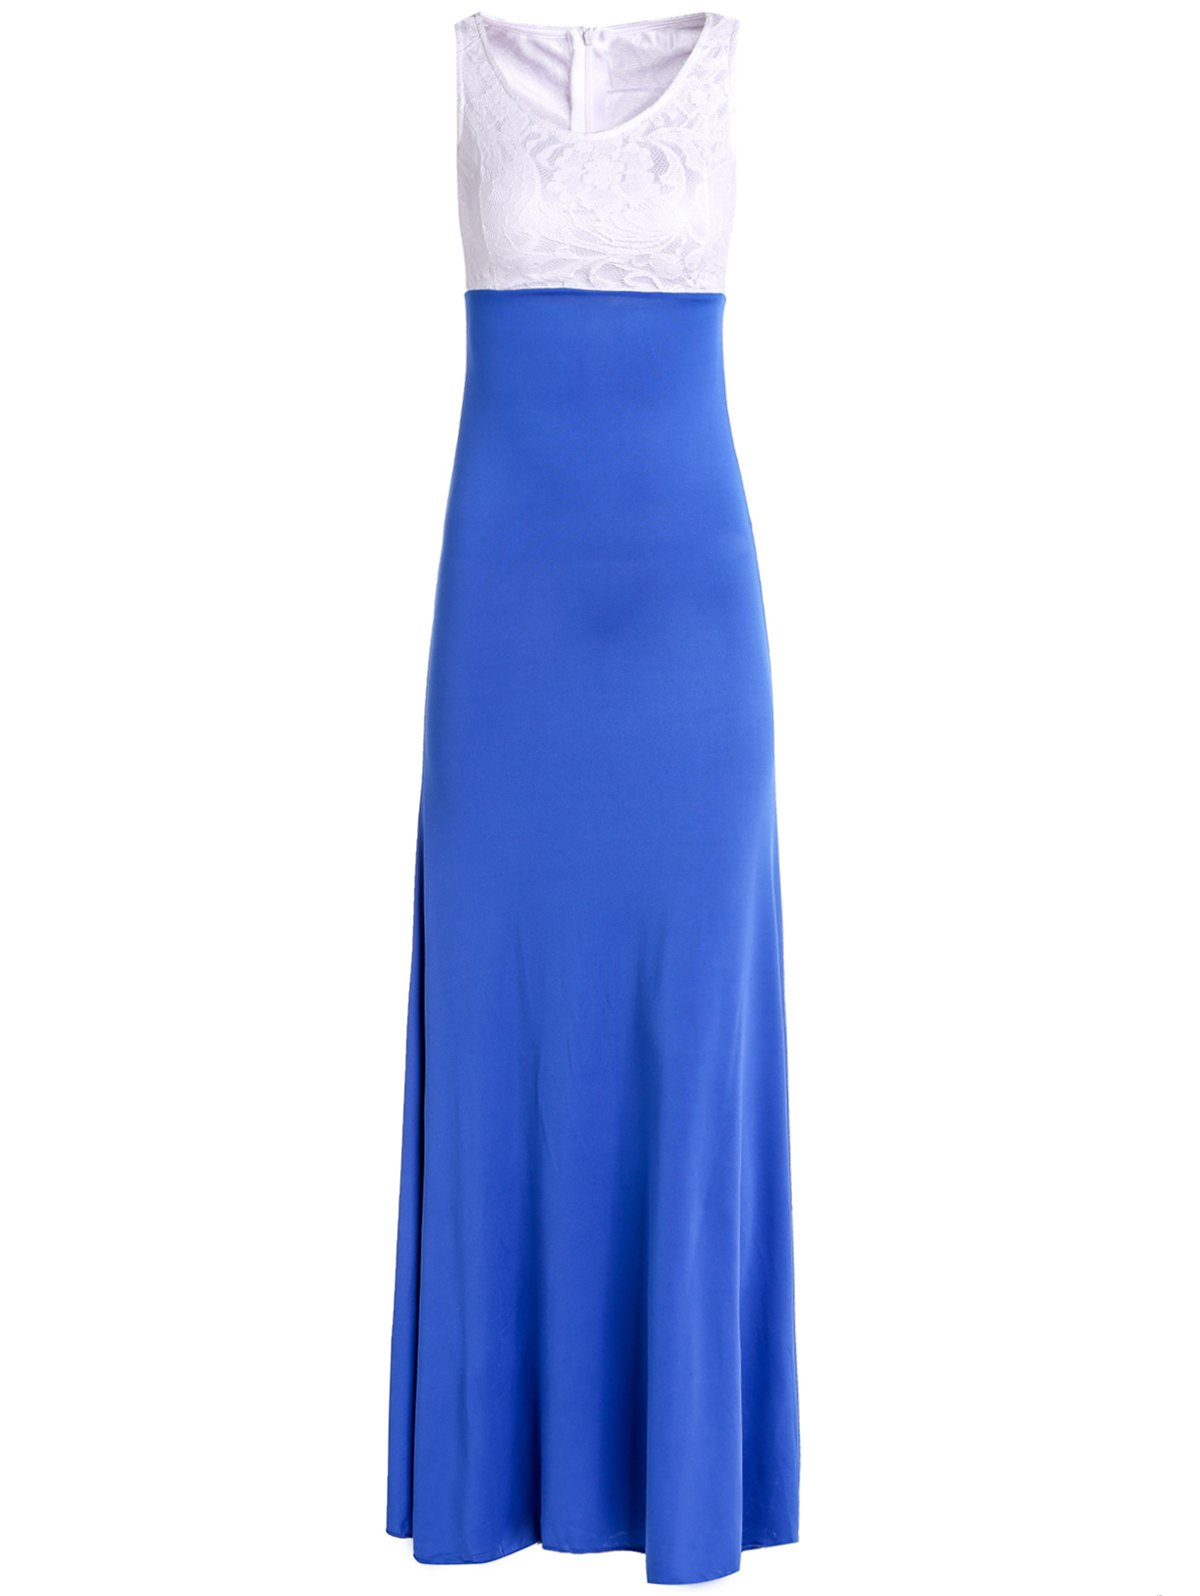 Elegant Scoop Neck Sleeveless Lace Spliced Ruched Maxi Dress For Women - BLUE M